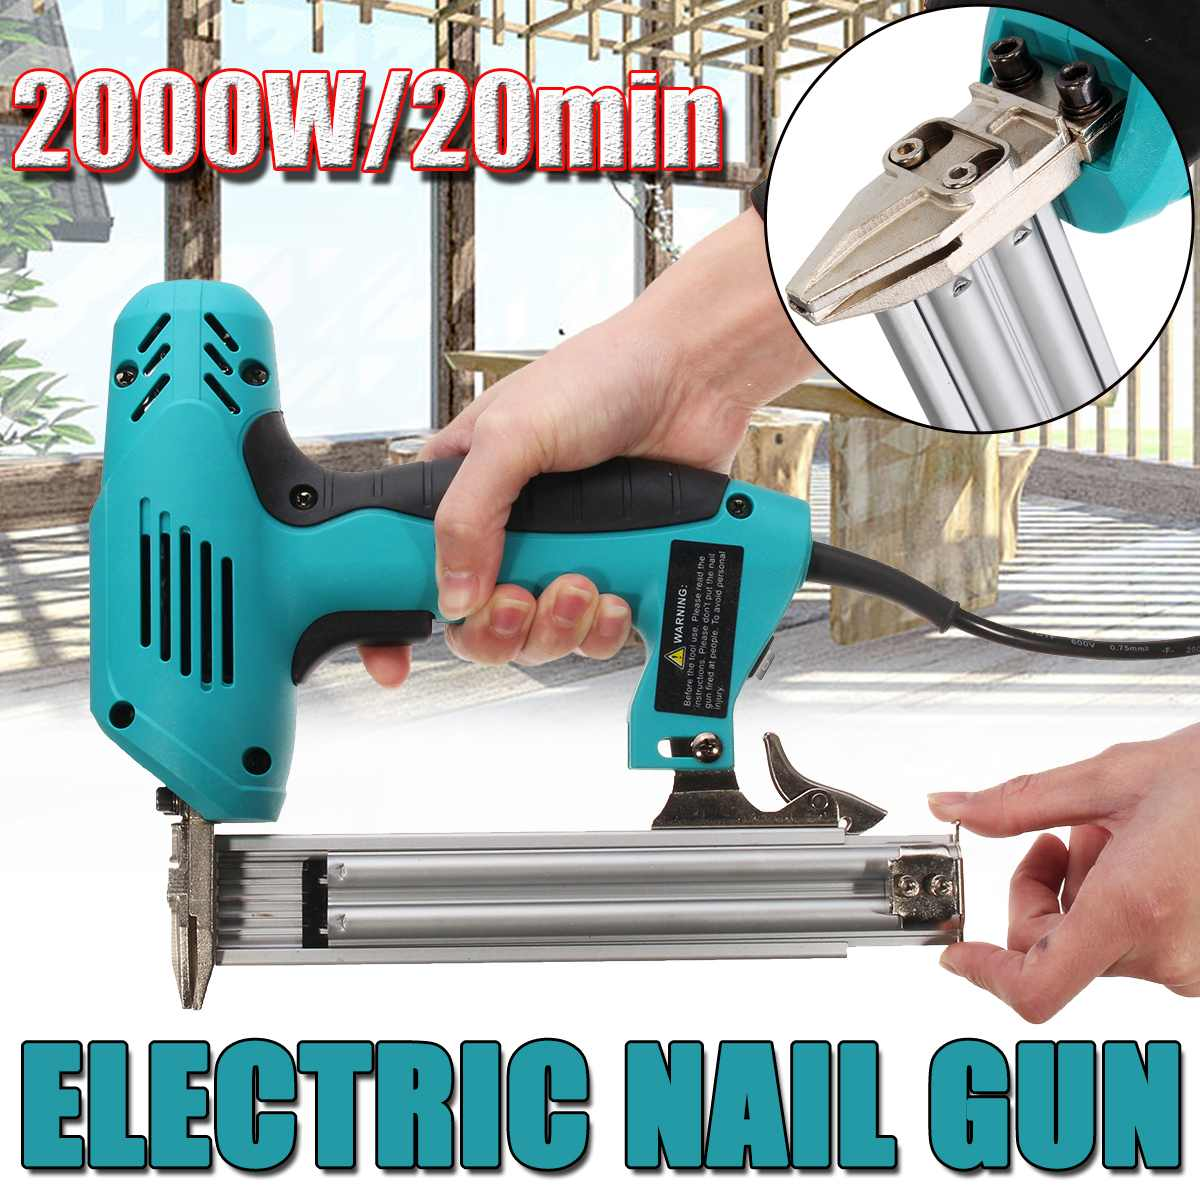 Doersupp 10-30mm Electric Straight Nail-Gun Heavy-Duty Woodworking Tool Electrical Staple Nail 220V 2000W